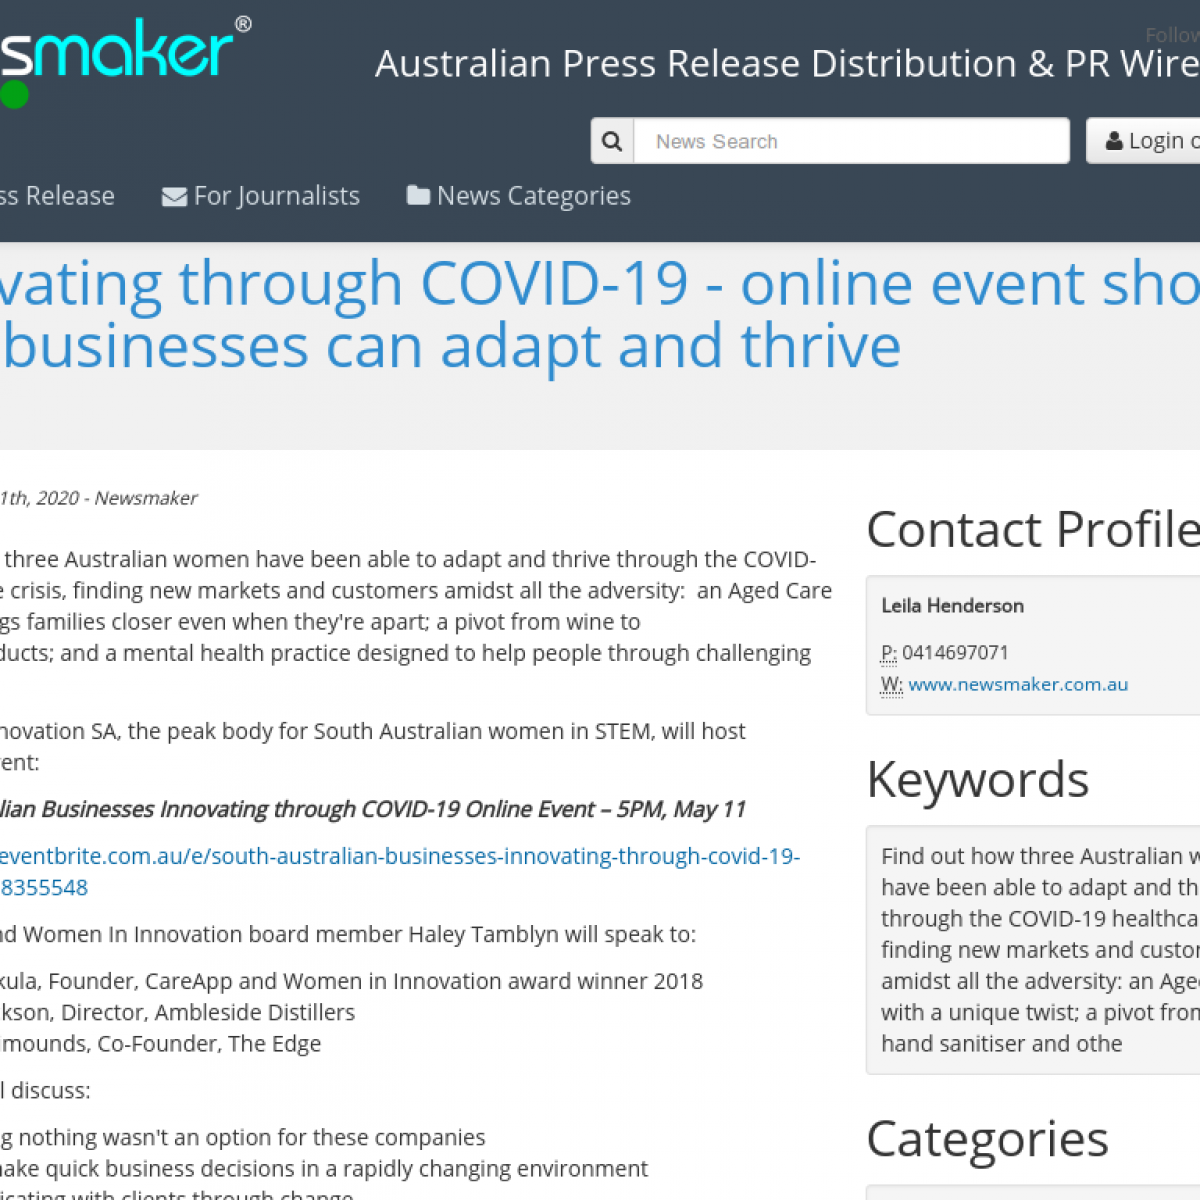 Innovating through COVID-19 - online event shows how businesses can adapt and thrive